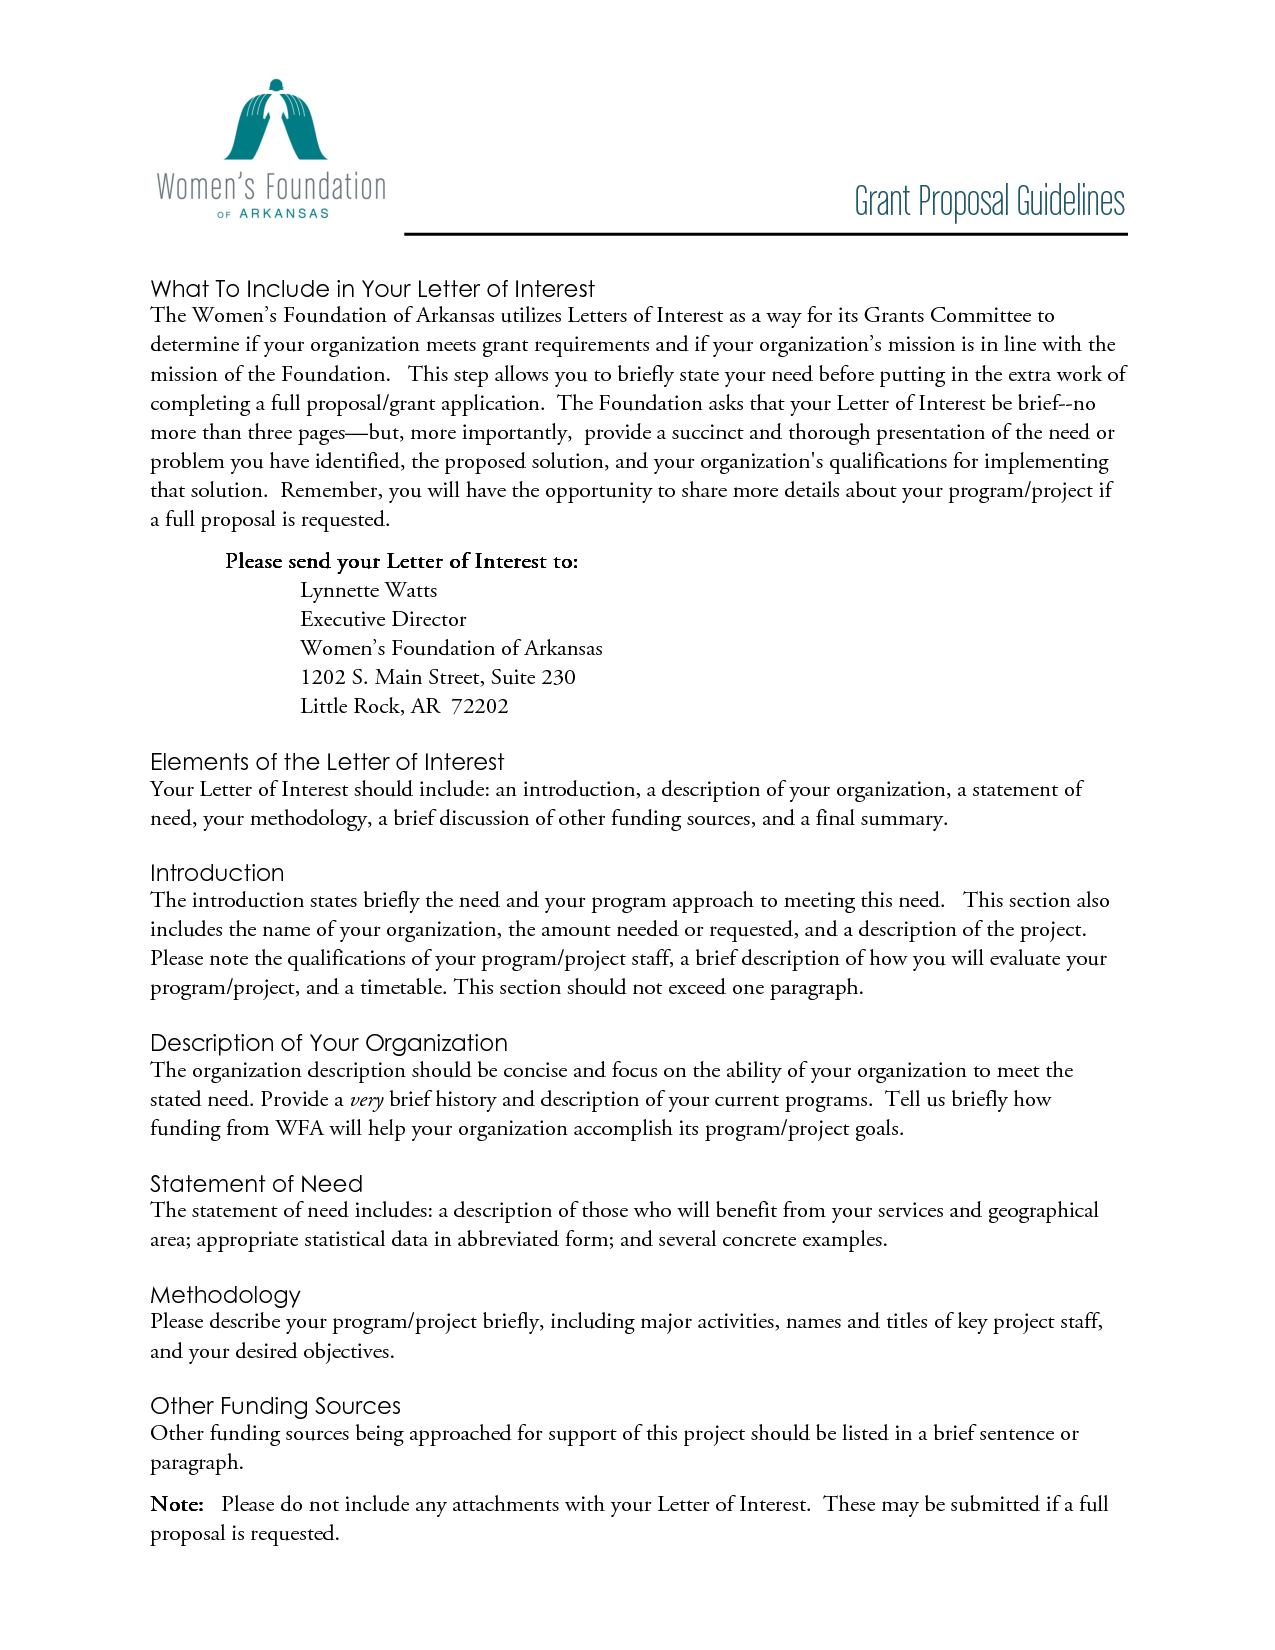 Free Letter Of Interest Templates Letter Of Interest